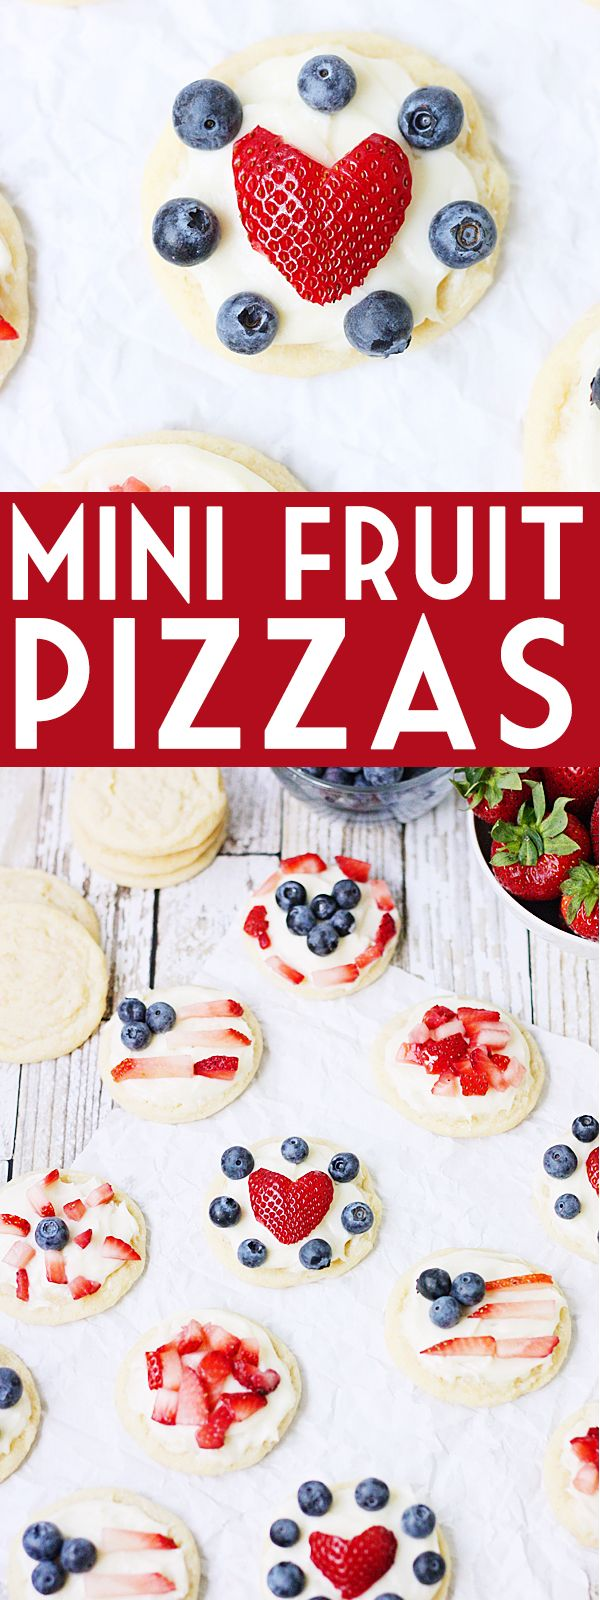 Mini Fruit Pizzas -- Mini fruit pizzas are a fun and festive dessert for the 4th of July or any celebration! Top them with berries, diced kiwi...even mandarin oranges!   isthisreallymylife.com